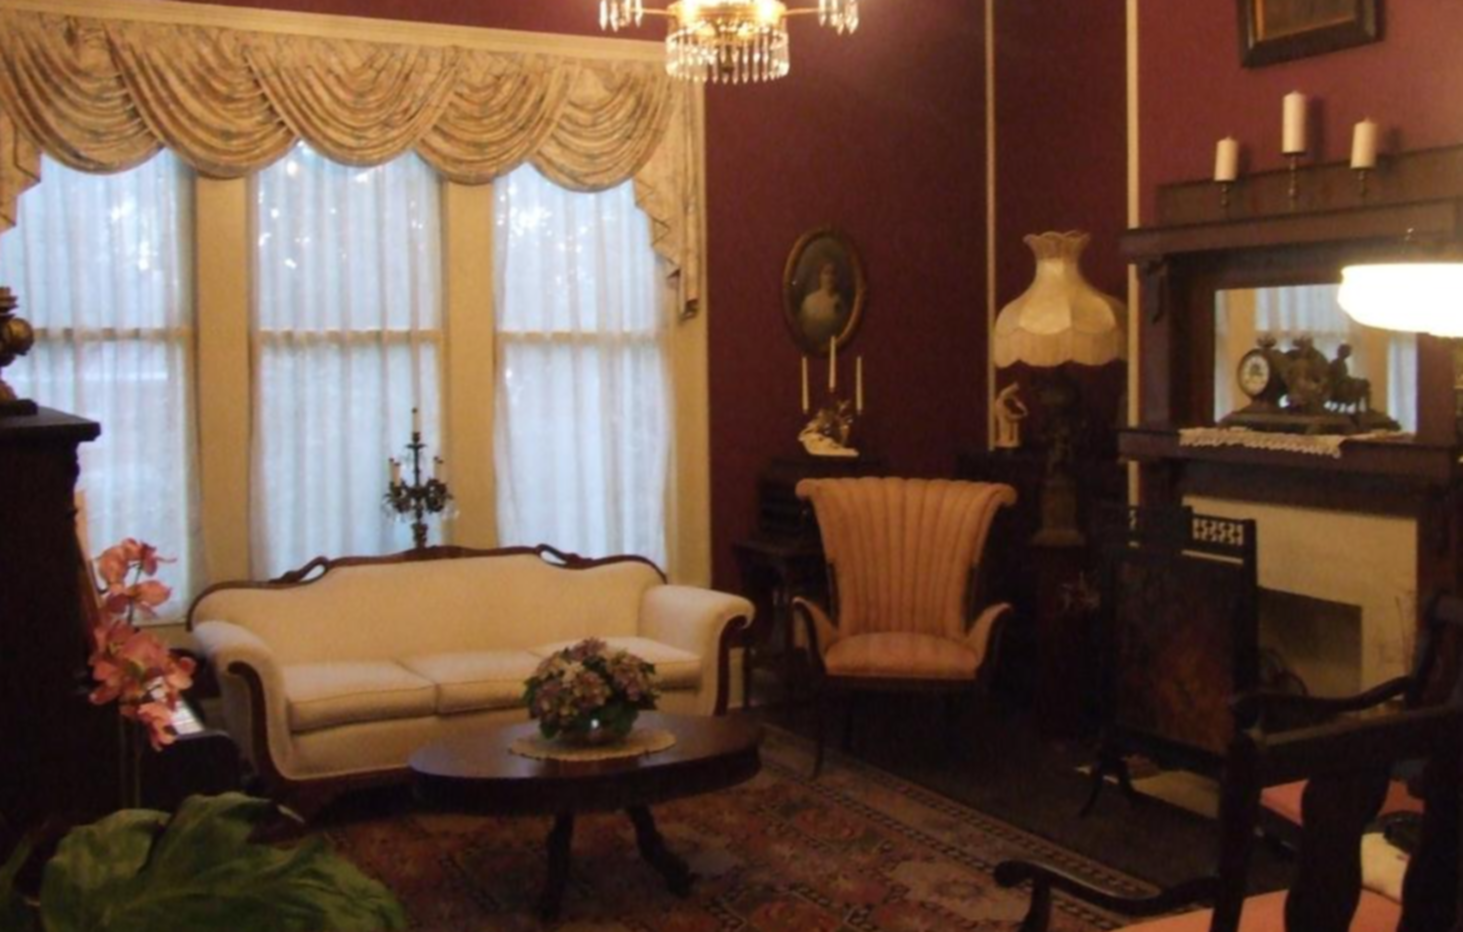 A room filled with furniture and a fireplace at The Jewell of Vienna.